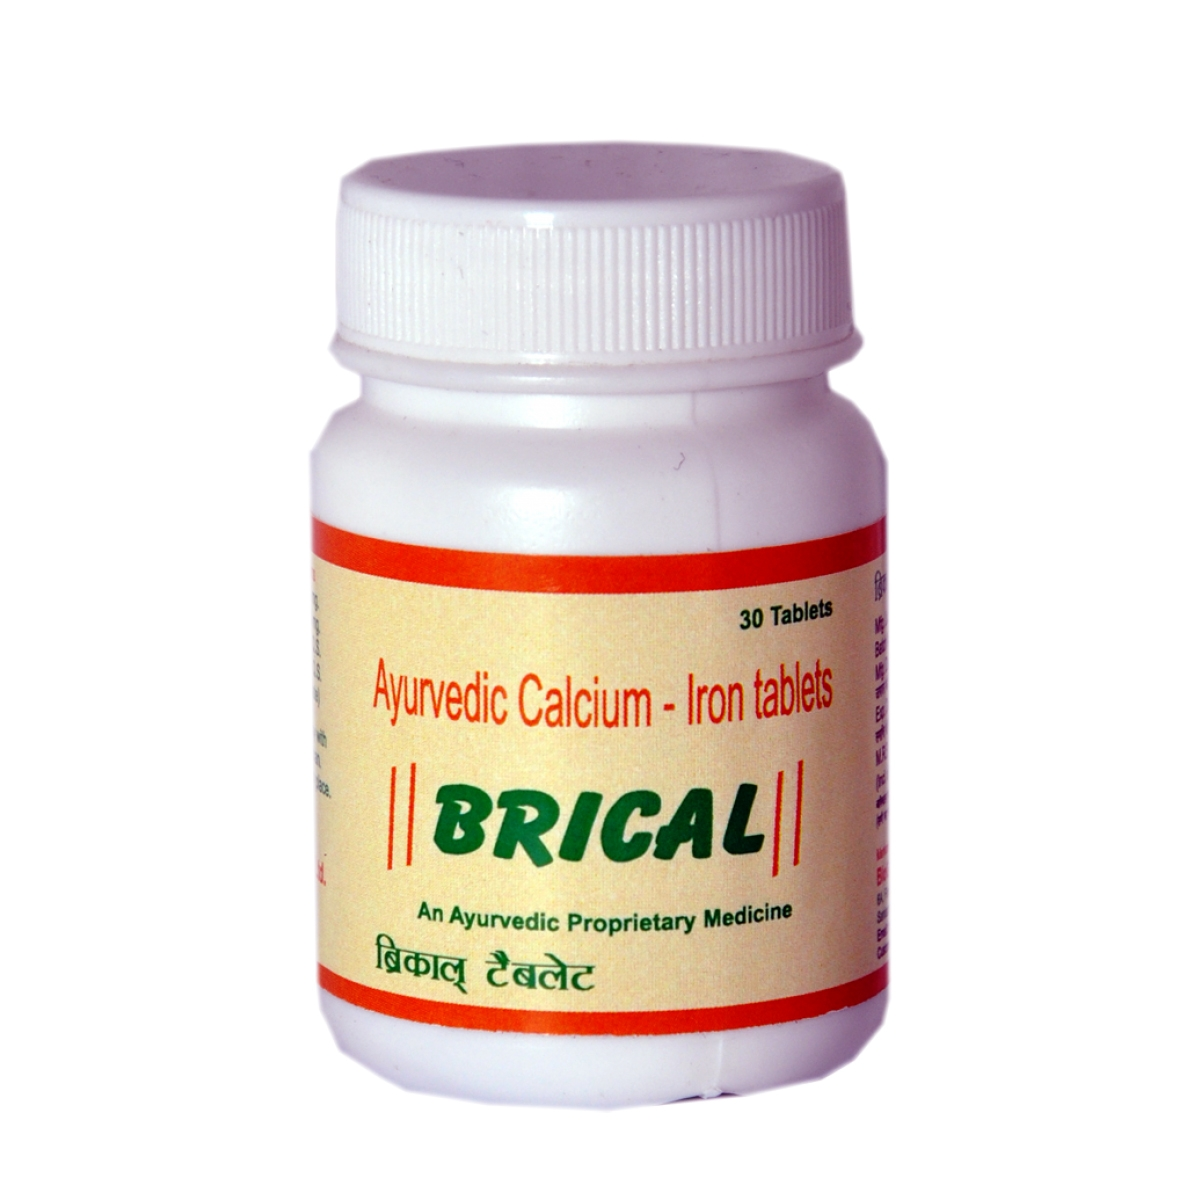 Brical Tablets In Narsinghpur